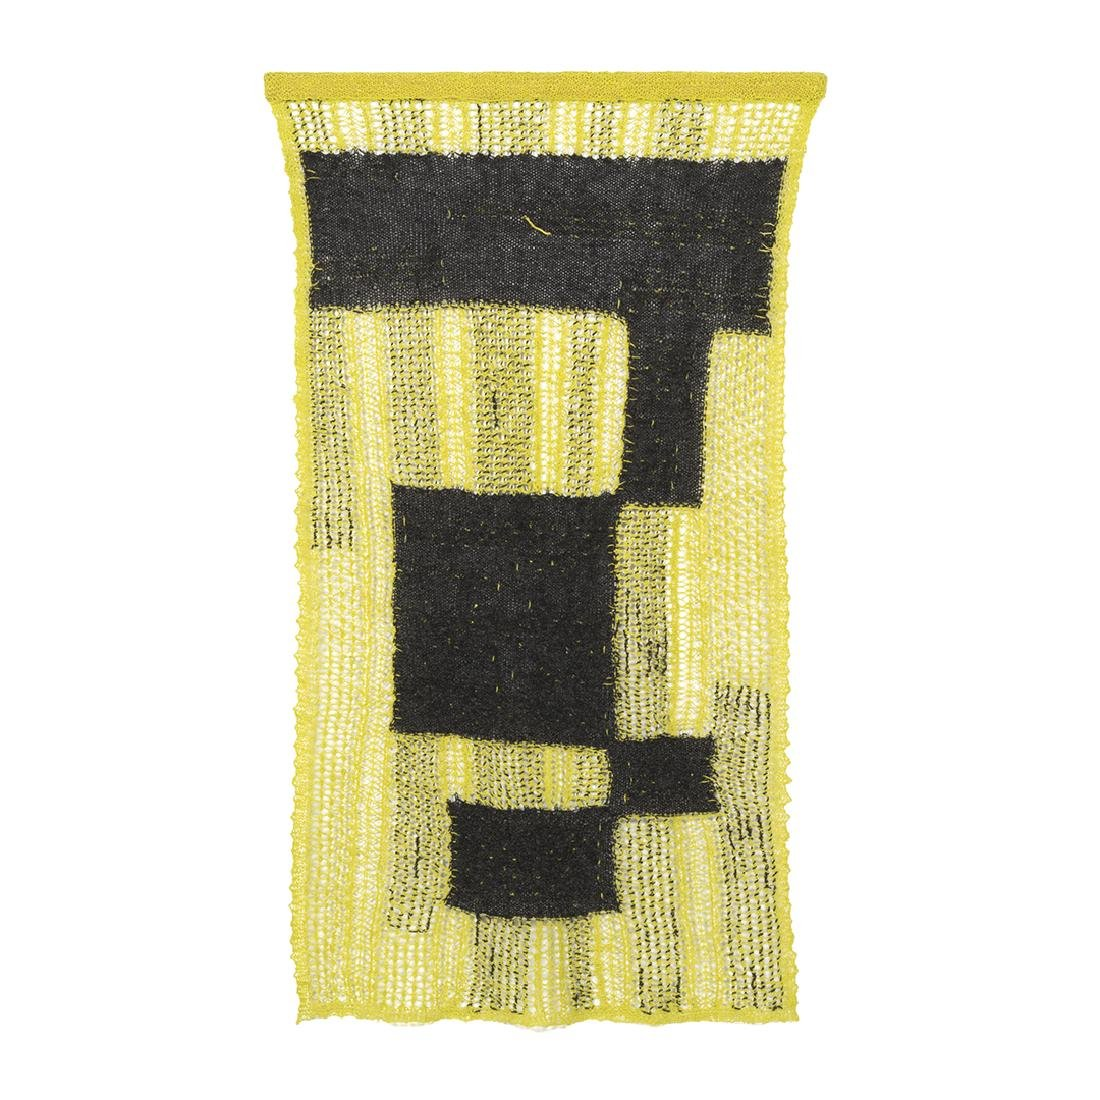 Woven Textile Wall Hanging